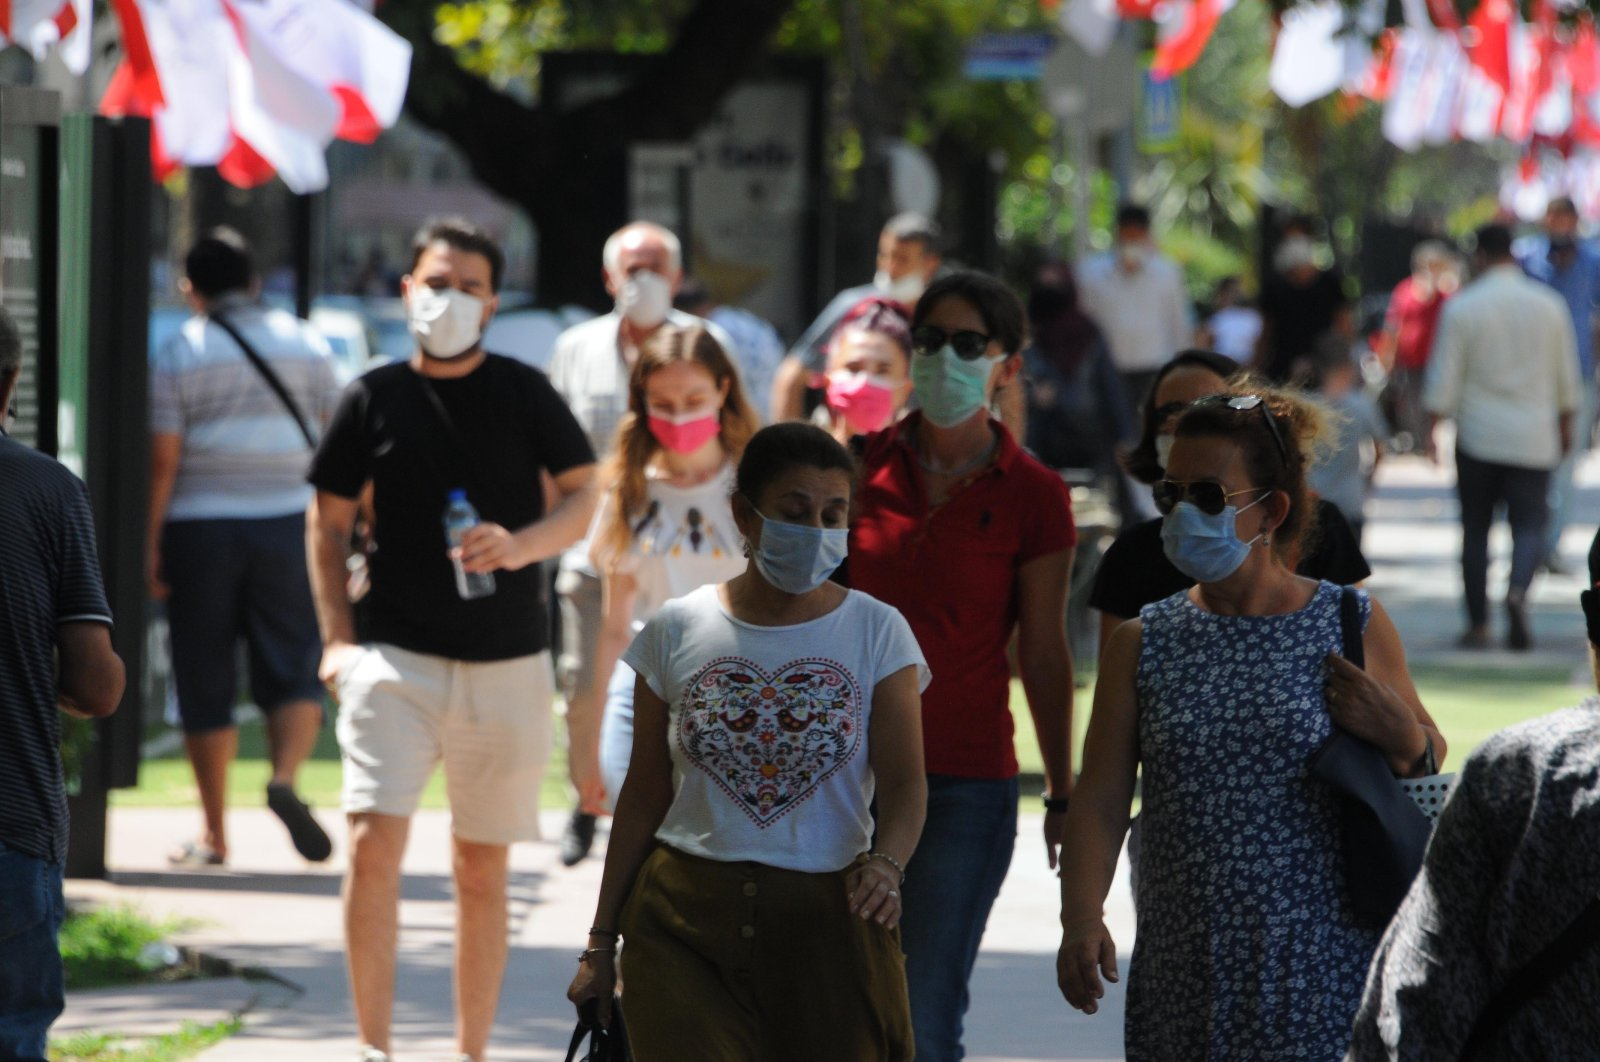 People wearing protective masks against the coronavirus walk on a street in Kocaeli province, northwestern Turkey, Aug. 26, 2020. (DHA Photo)